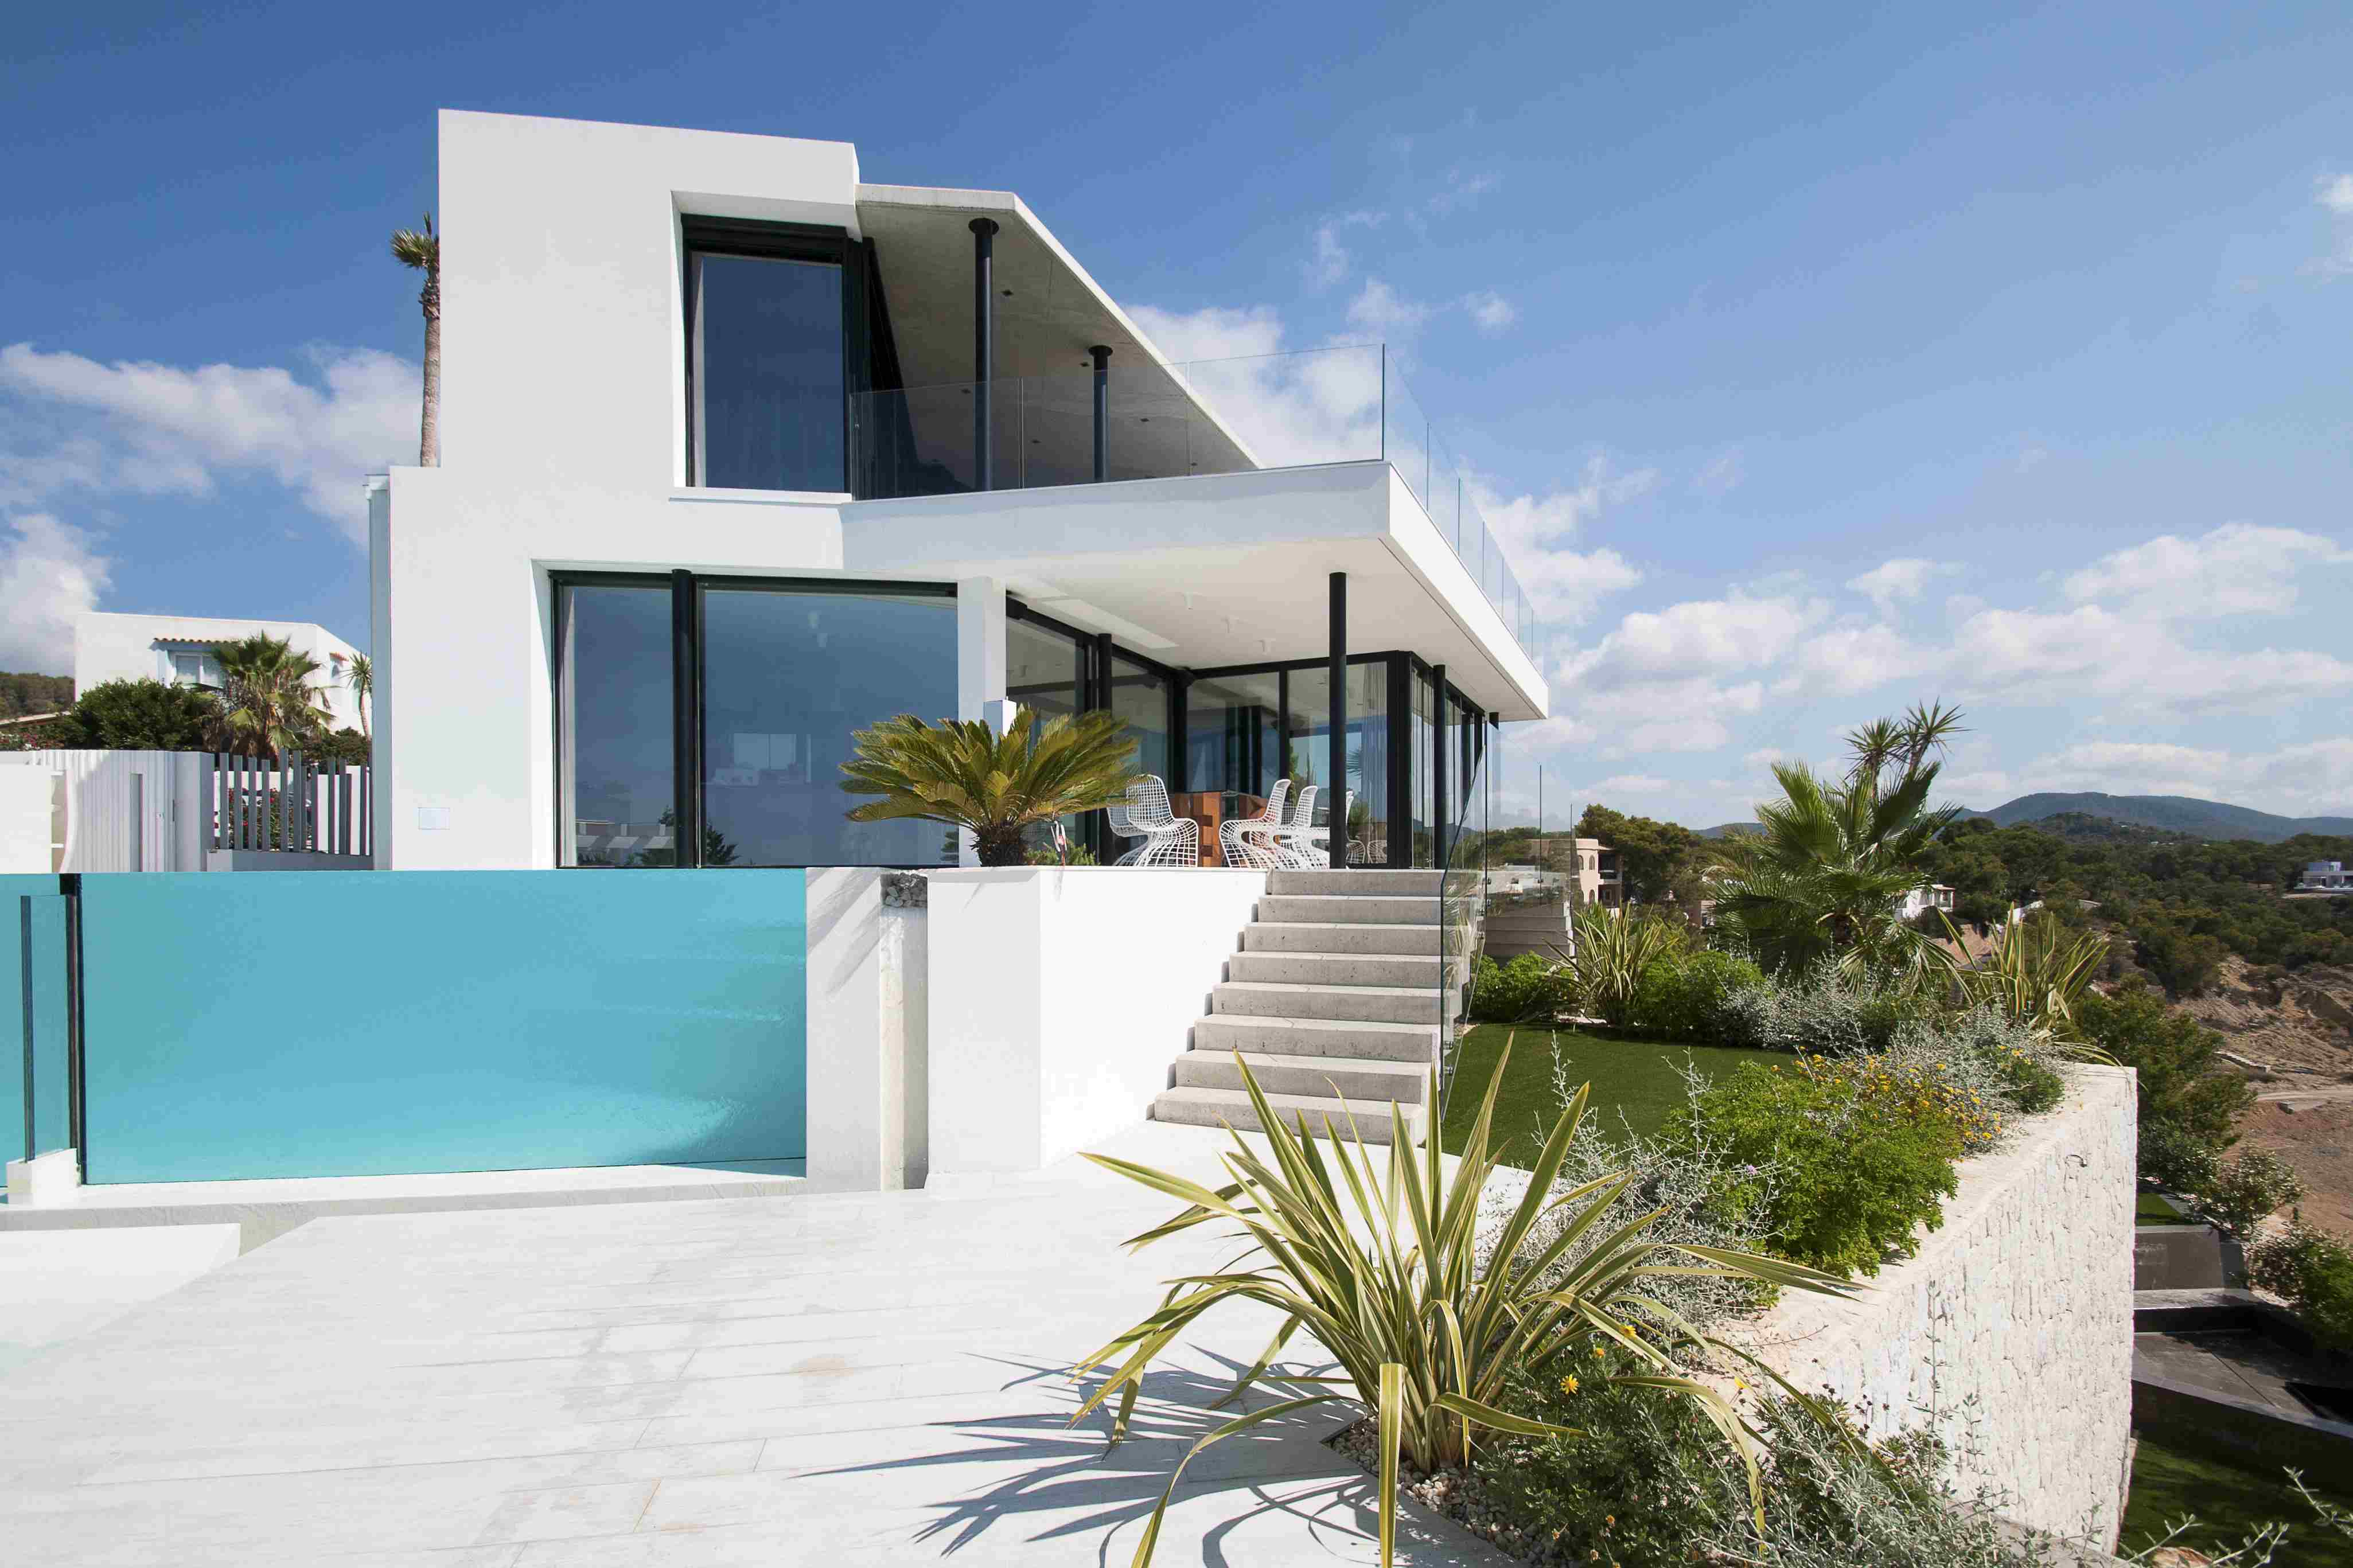 2 Story Small House Plans With Porches furthermore Urban Modern Townhomes Designs in addition Fence Styles And besides thesouthernbasement pany likewise Villas Seaview Ibiza. on town and country pool house design